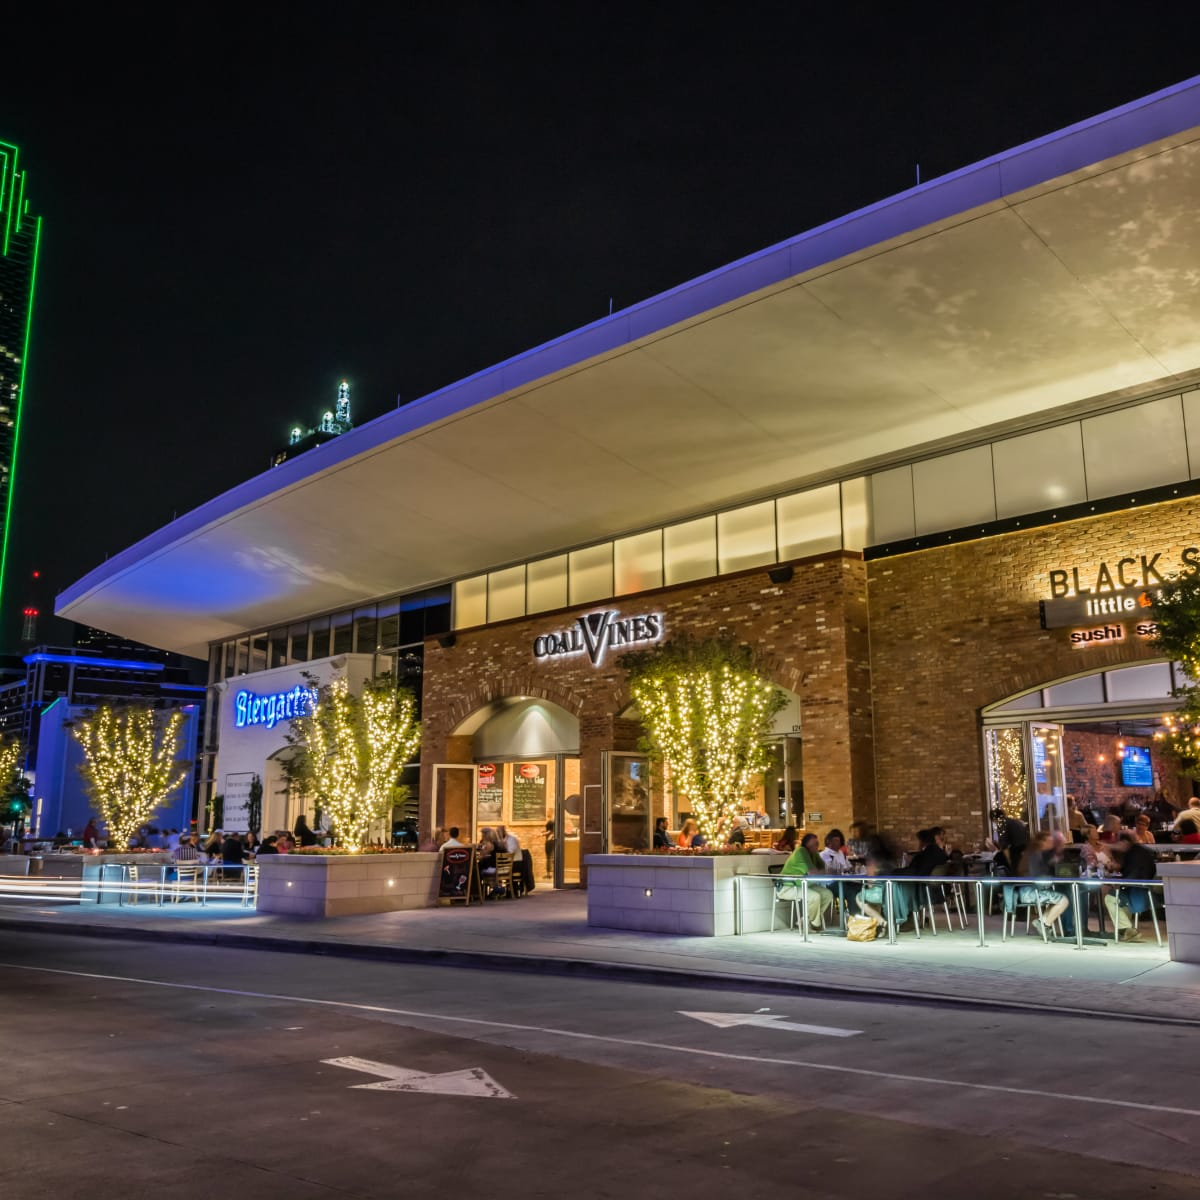 Restaurants on Lamar Street in Dallas